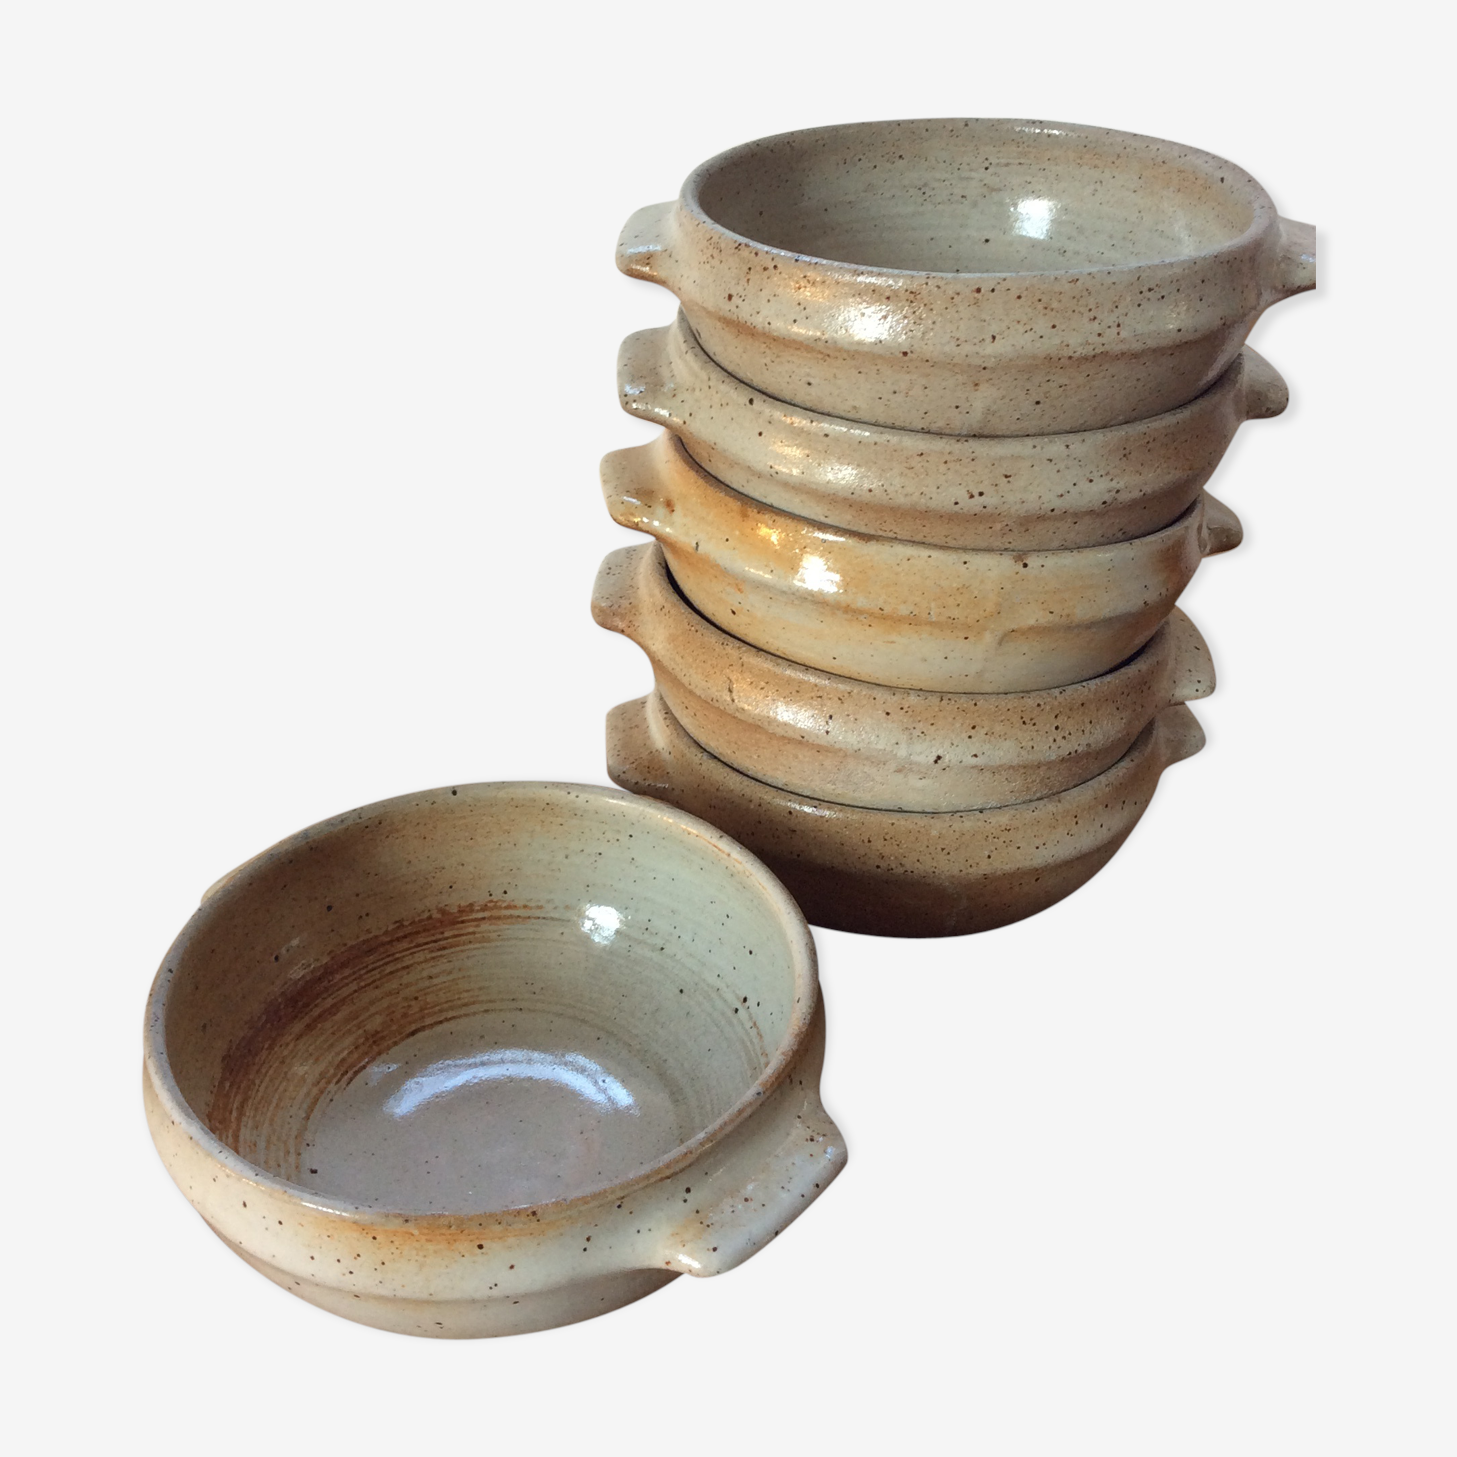 Bowls or cups in stoneware vintage